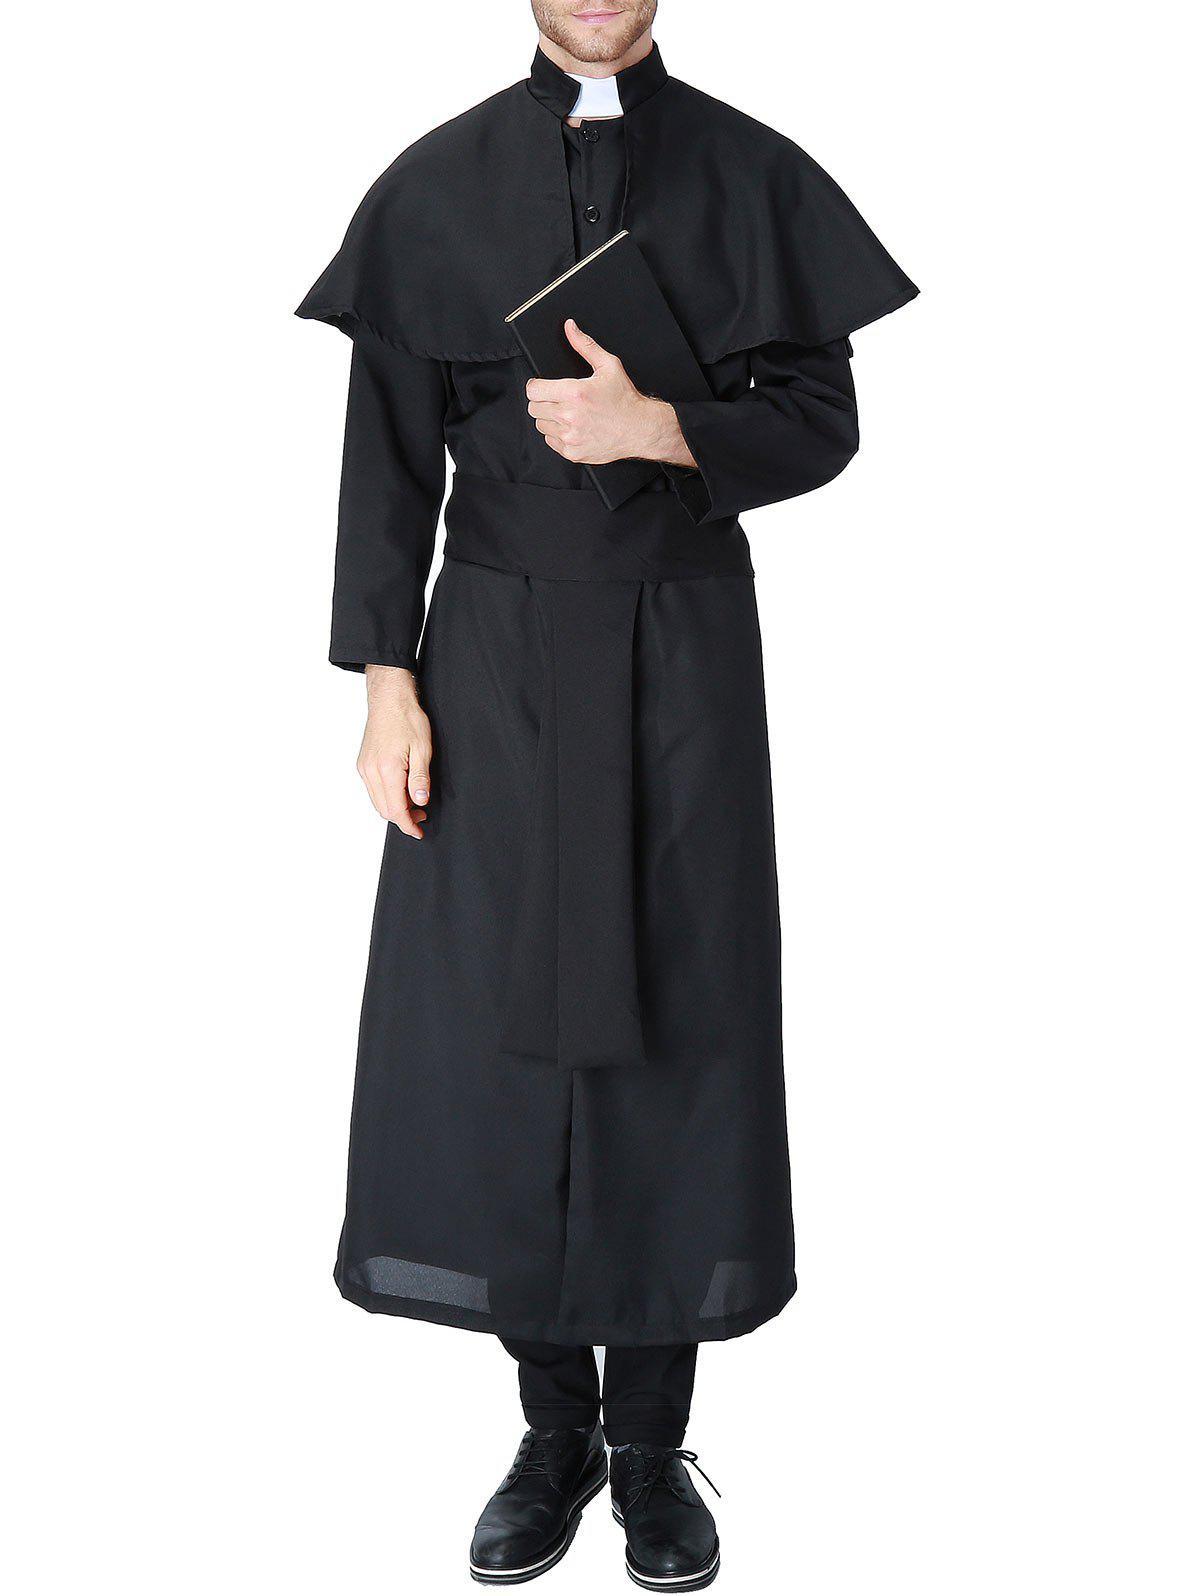 New Halloween Priest Costume Coat